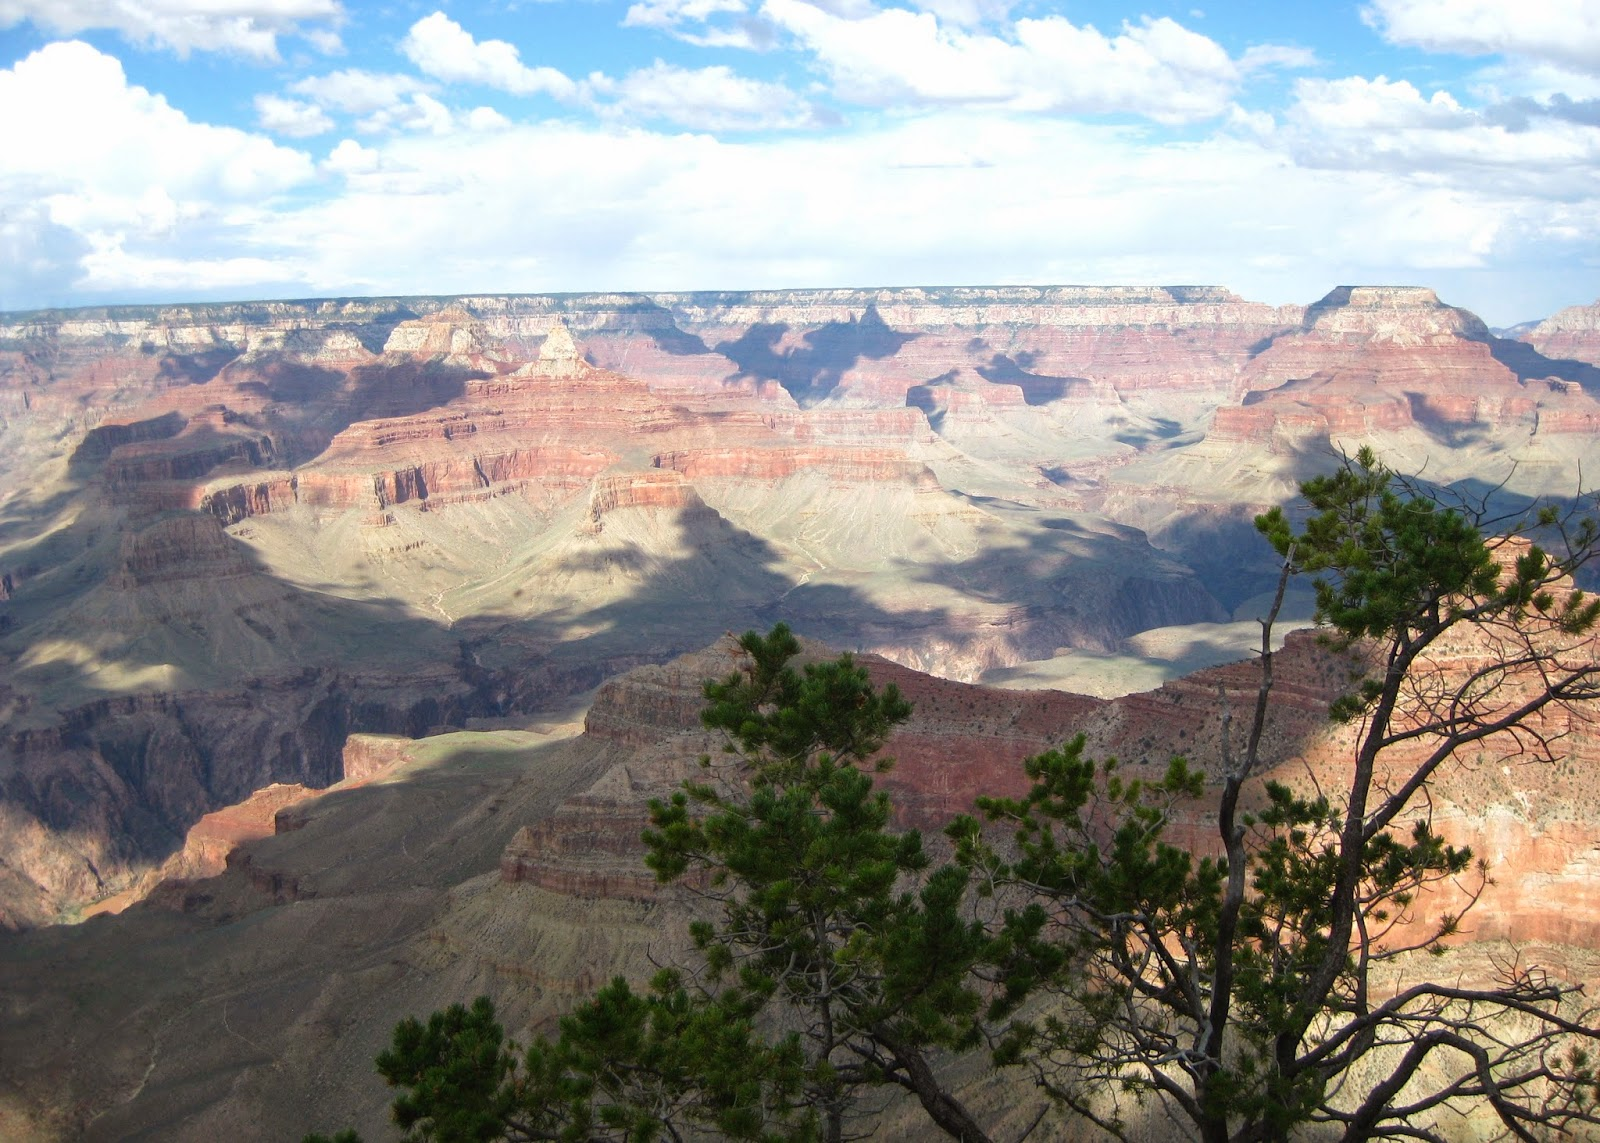 best views of the Grand Canyon, Experience the Grand Canyon - South Rim